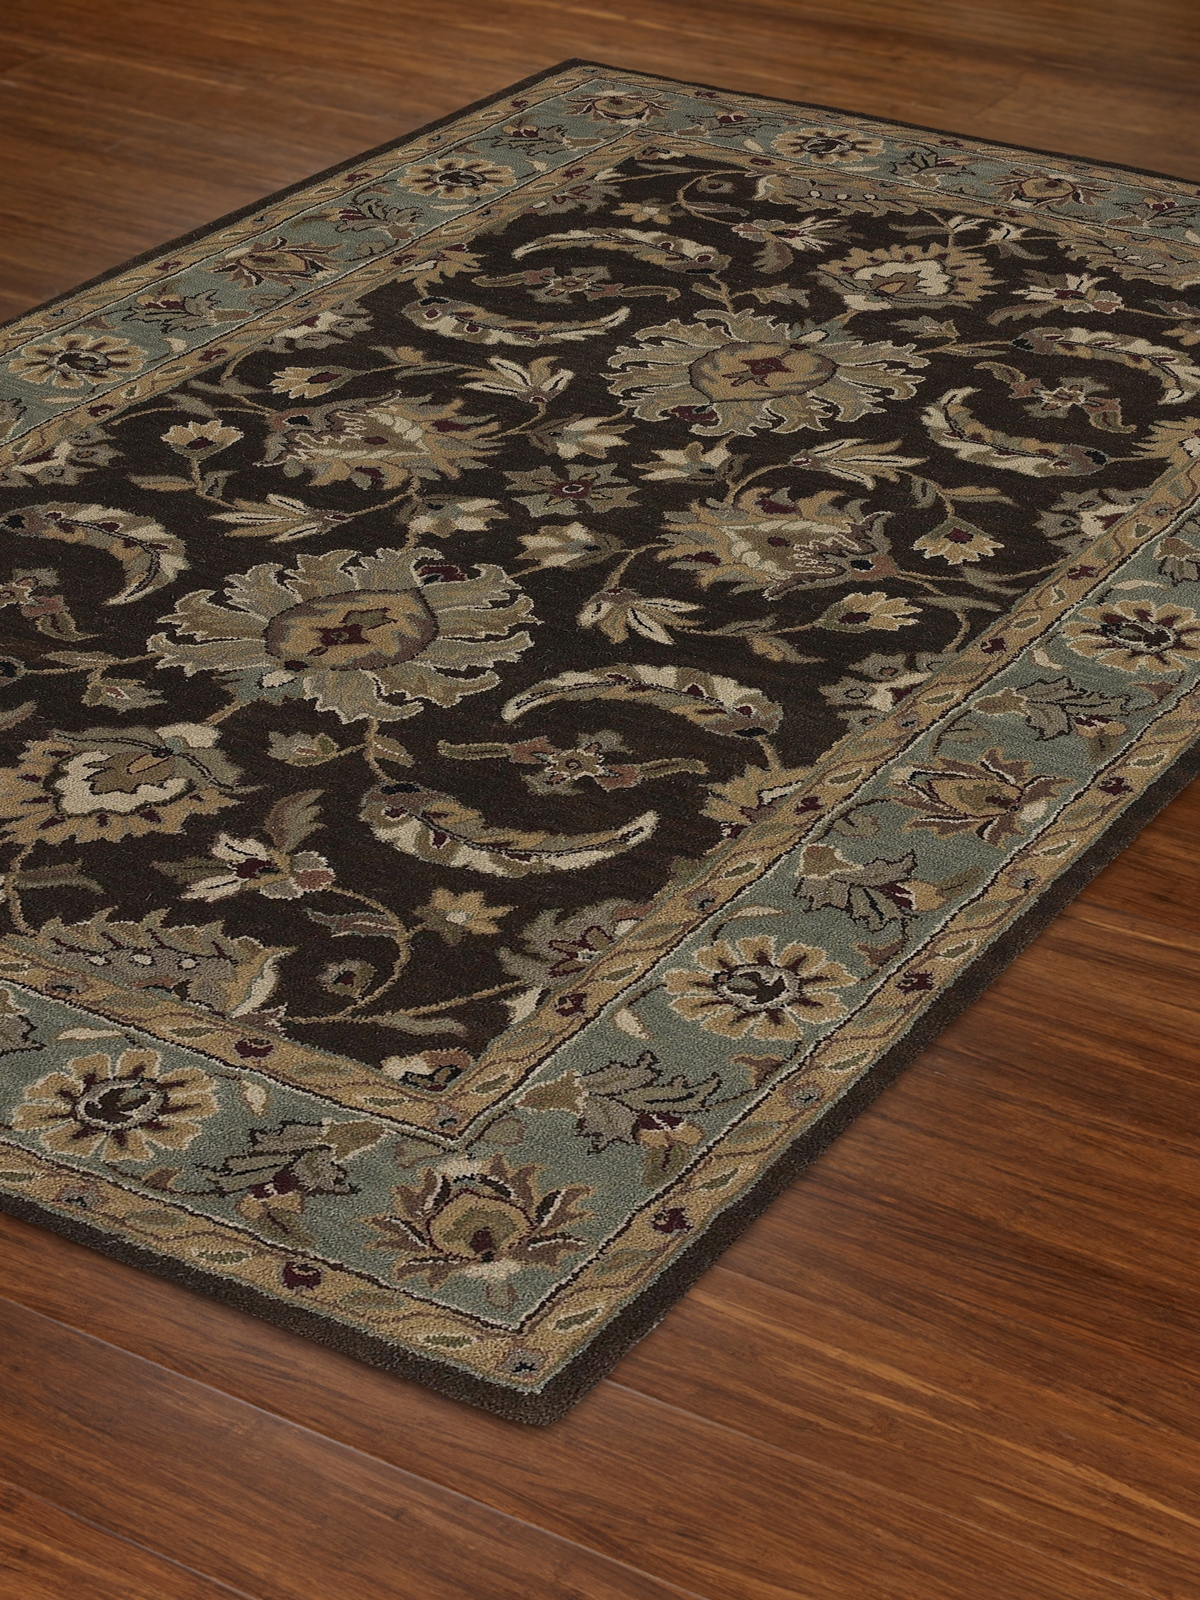 Dalyn Jewel Jw37 Chocolate And Spa Blue Area Rug Free